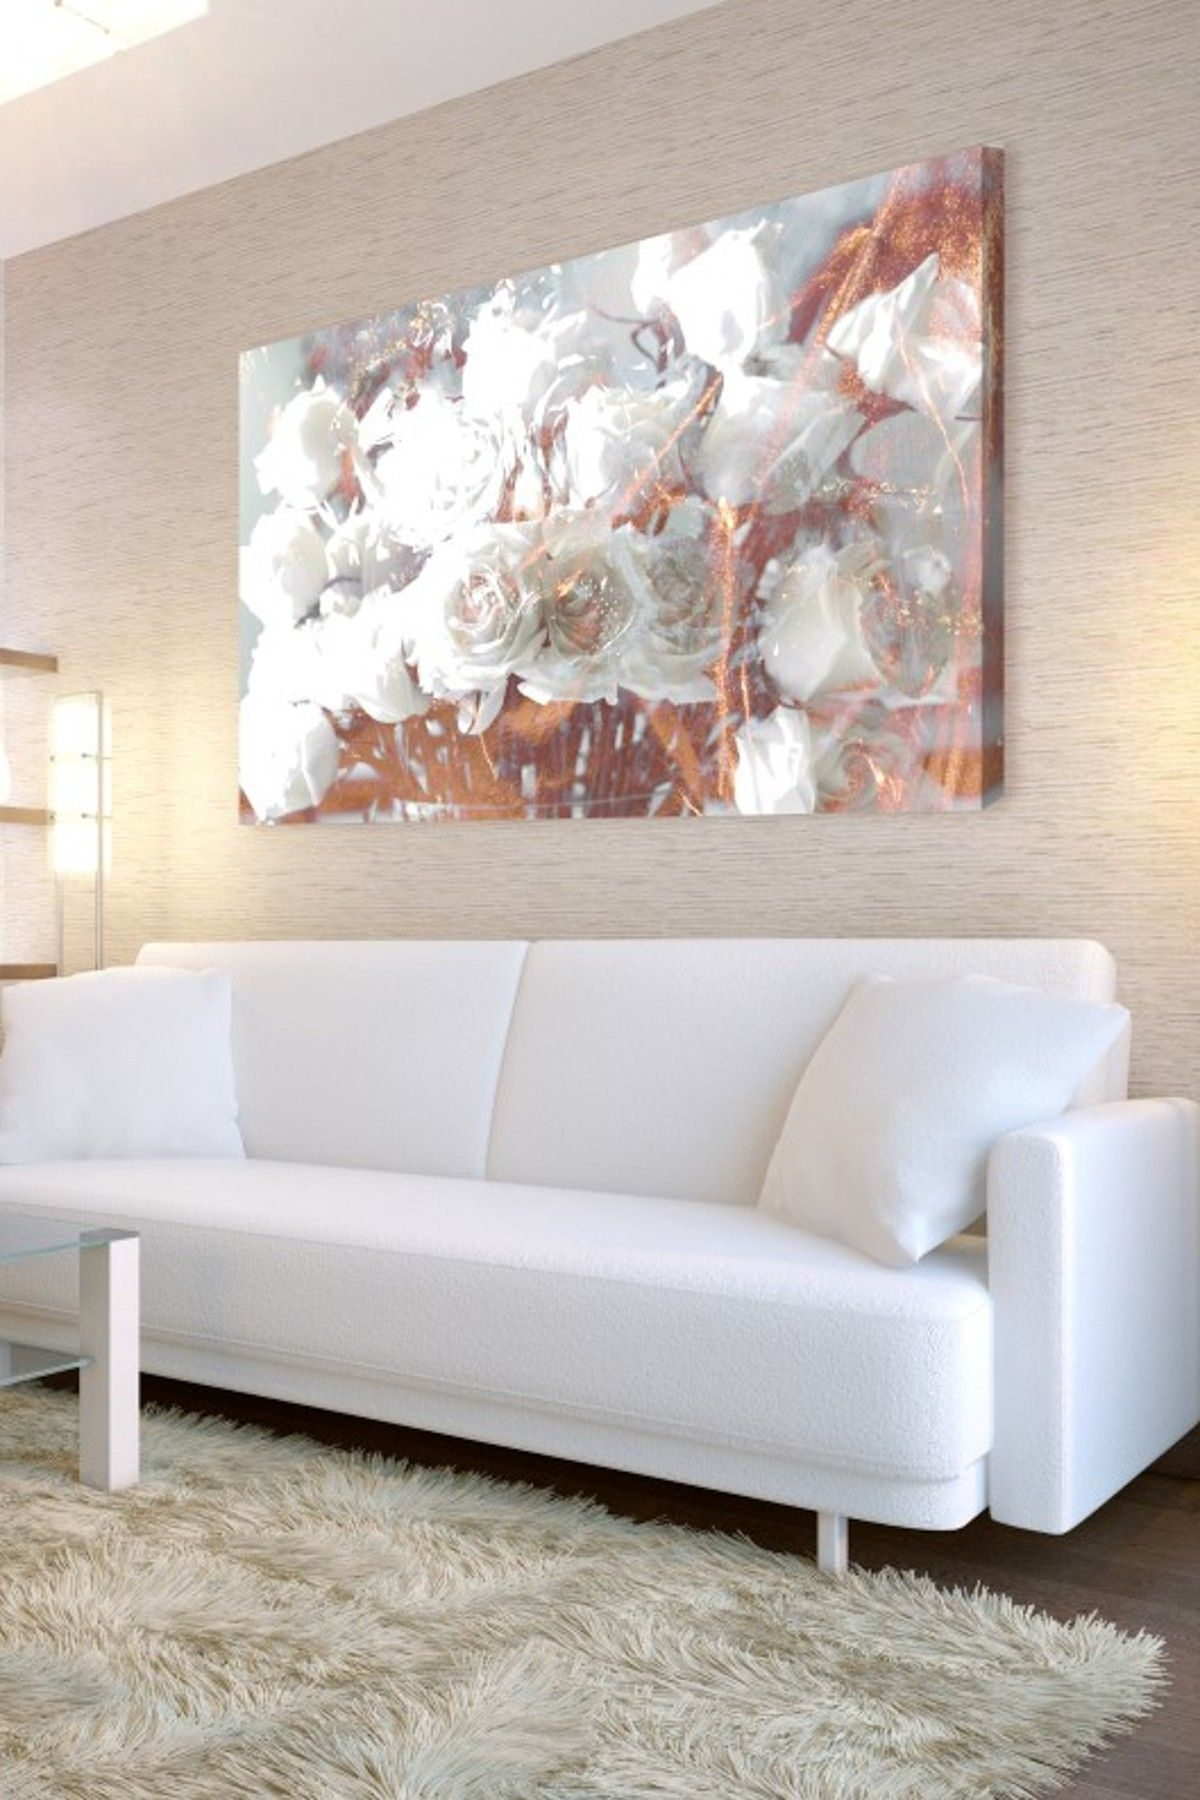 Rose Gold Metallic Floral Painting | Home Inspiration | Pinterest Inside Newest Gold Wall Art (View 9 of 15)